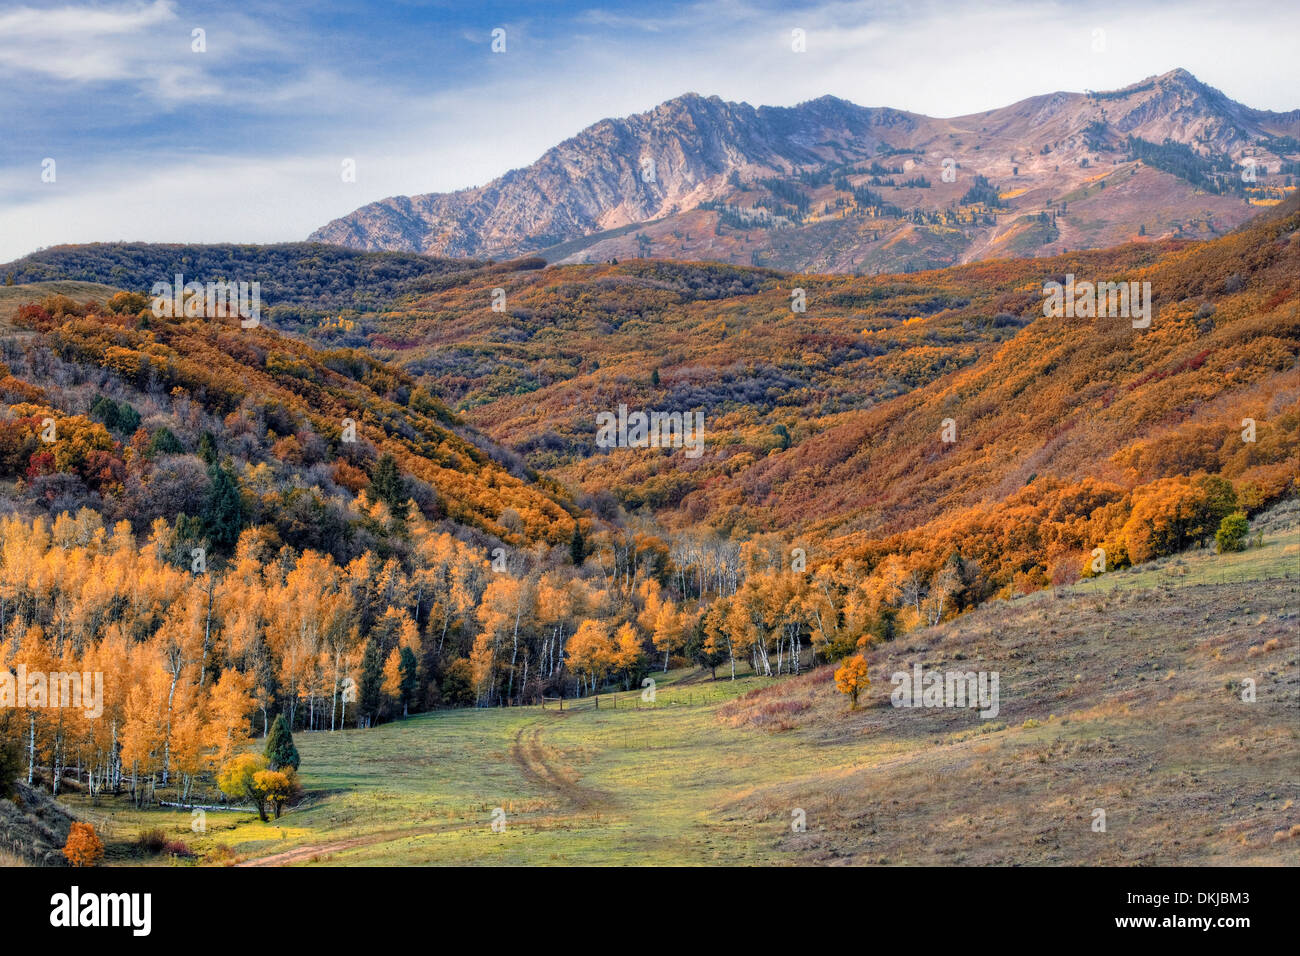 Strawberry Peak and Mount Ogden loom over a small side canyon of Ogden Valley in the Wasatch Mountains of northern Utah. - Stock Image